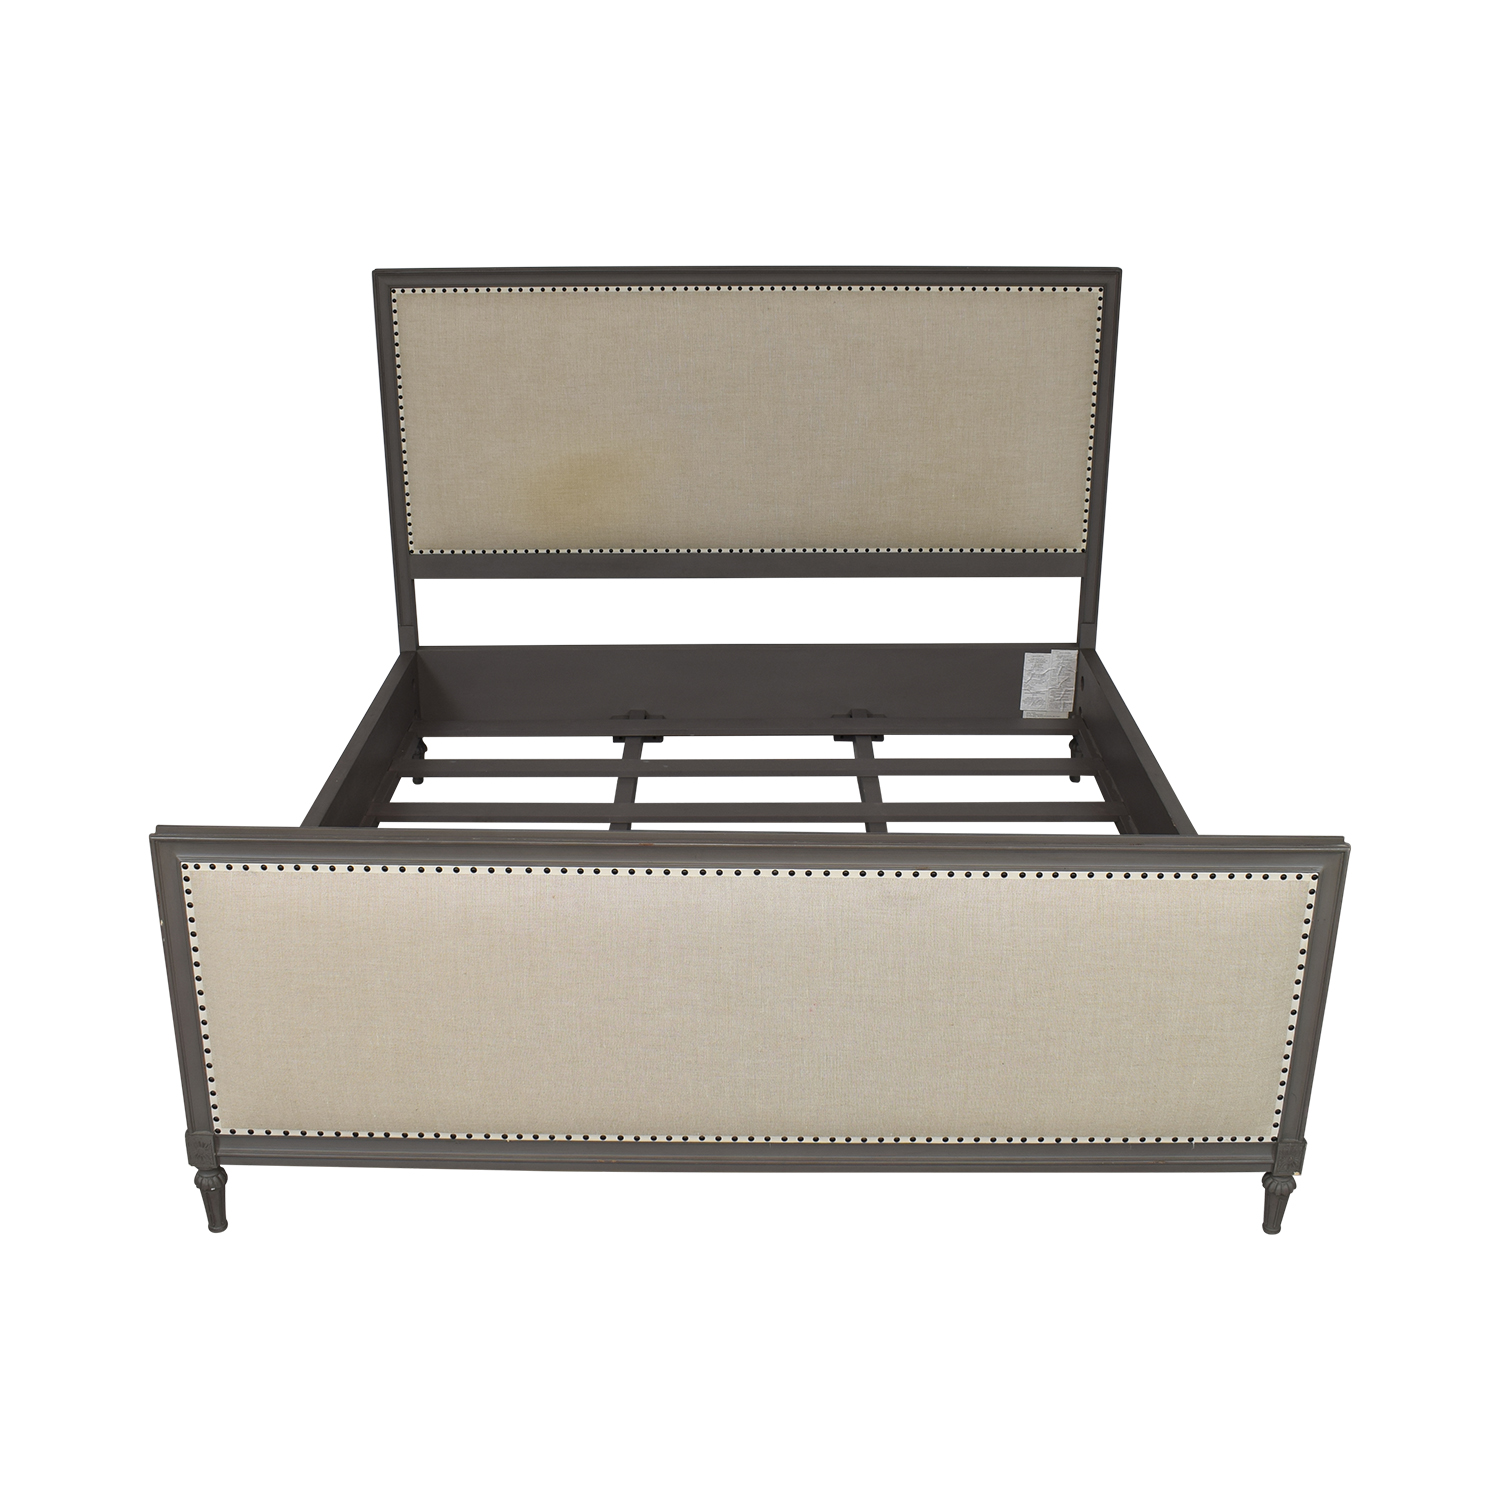 Restoration Hardware Restoration Hardware Maison Panel Fabric Bed with Footboard grey & beige